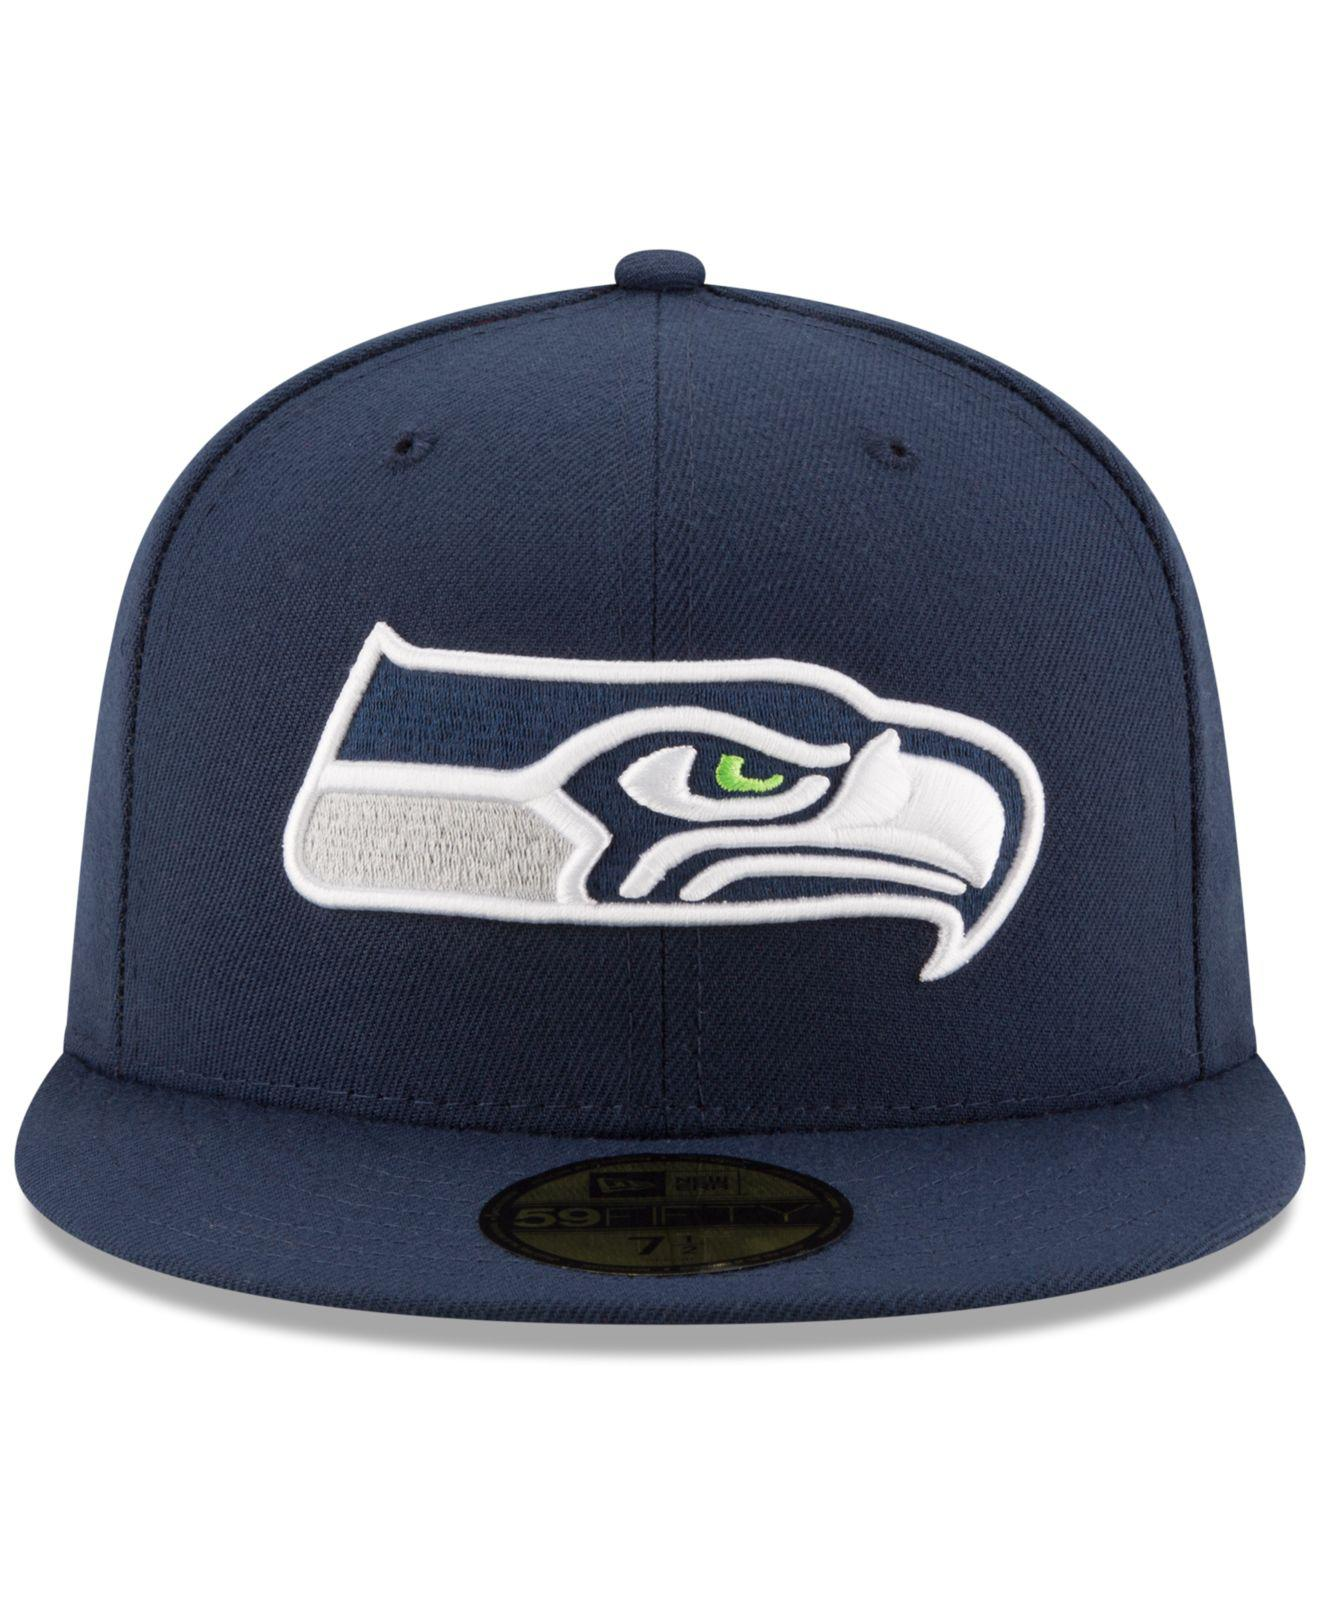 Lyst - Ktz 59fifty Cap Fitted Seattle Seahawks In Mesh in Blue for Men -  Save 20.588235294117652% a25bcf6c29e6